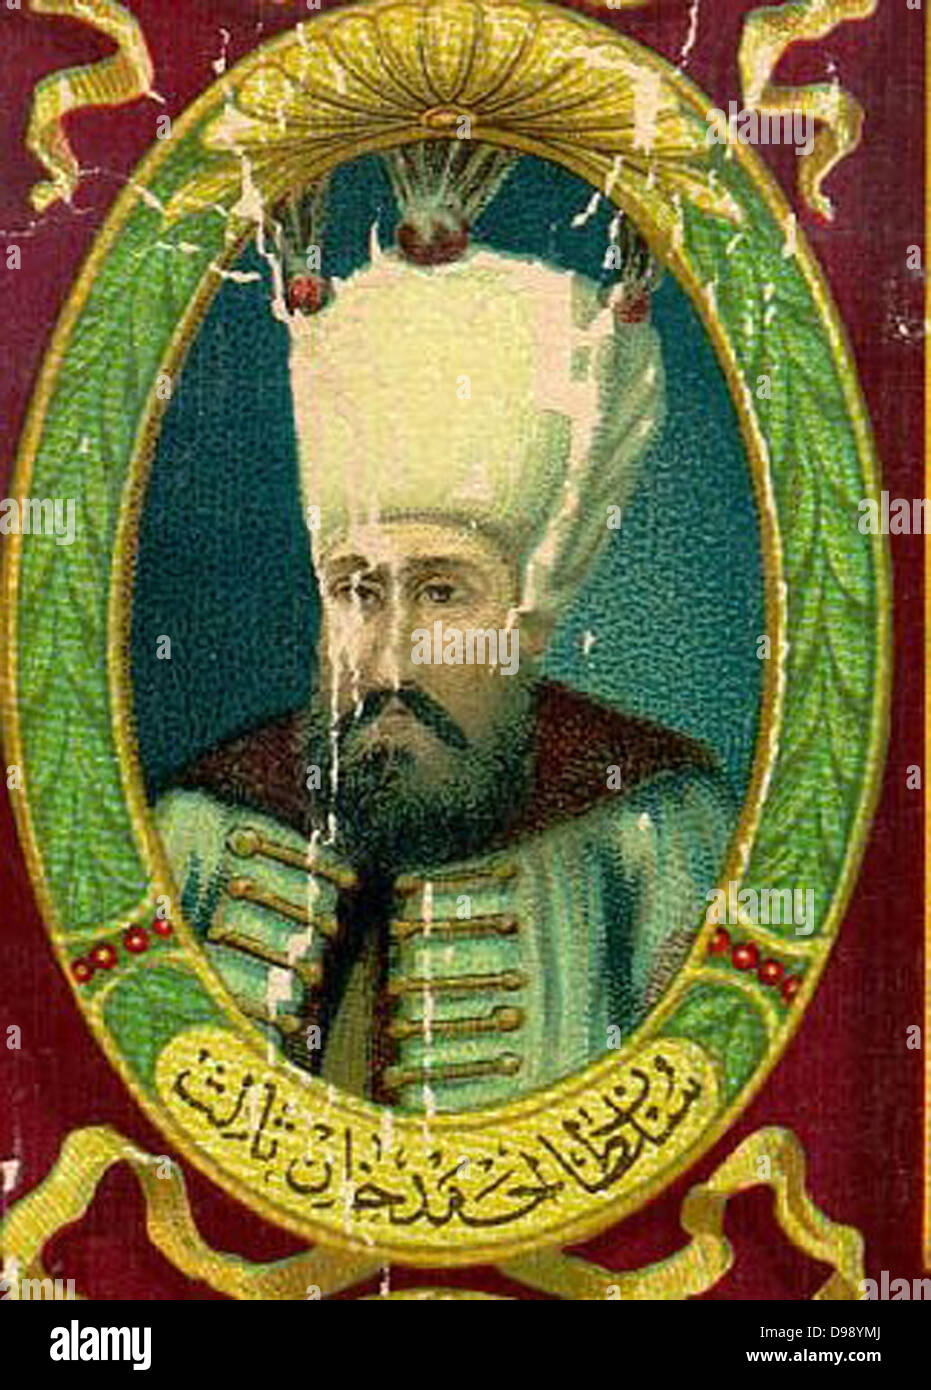 Ahmed III 1673 – July 1, 1736 Sultan of the Ottoman Empire and a son of  Sultan Mehmet IV (1648–87). He succeeded to the throne